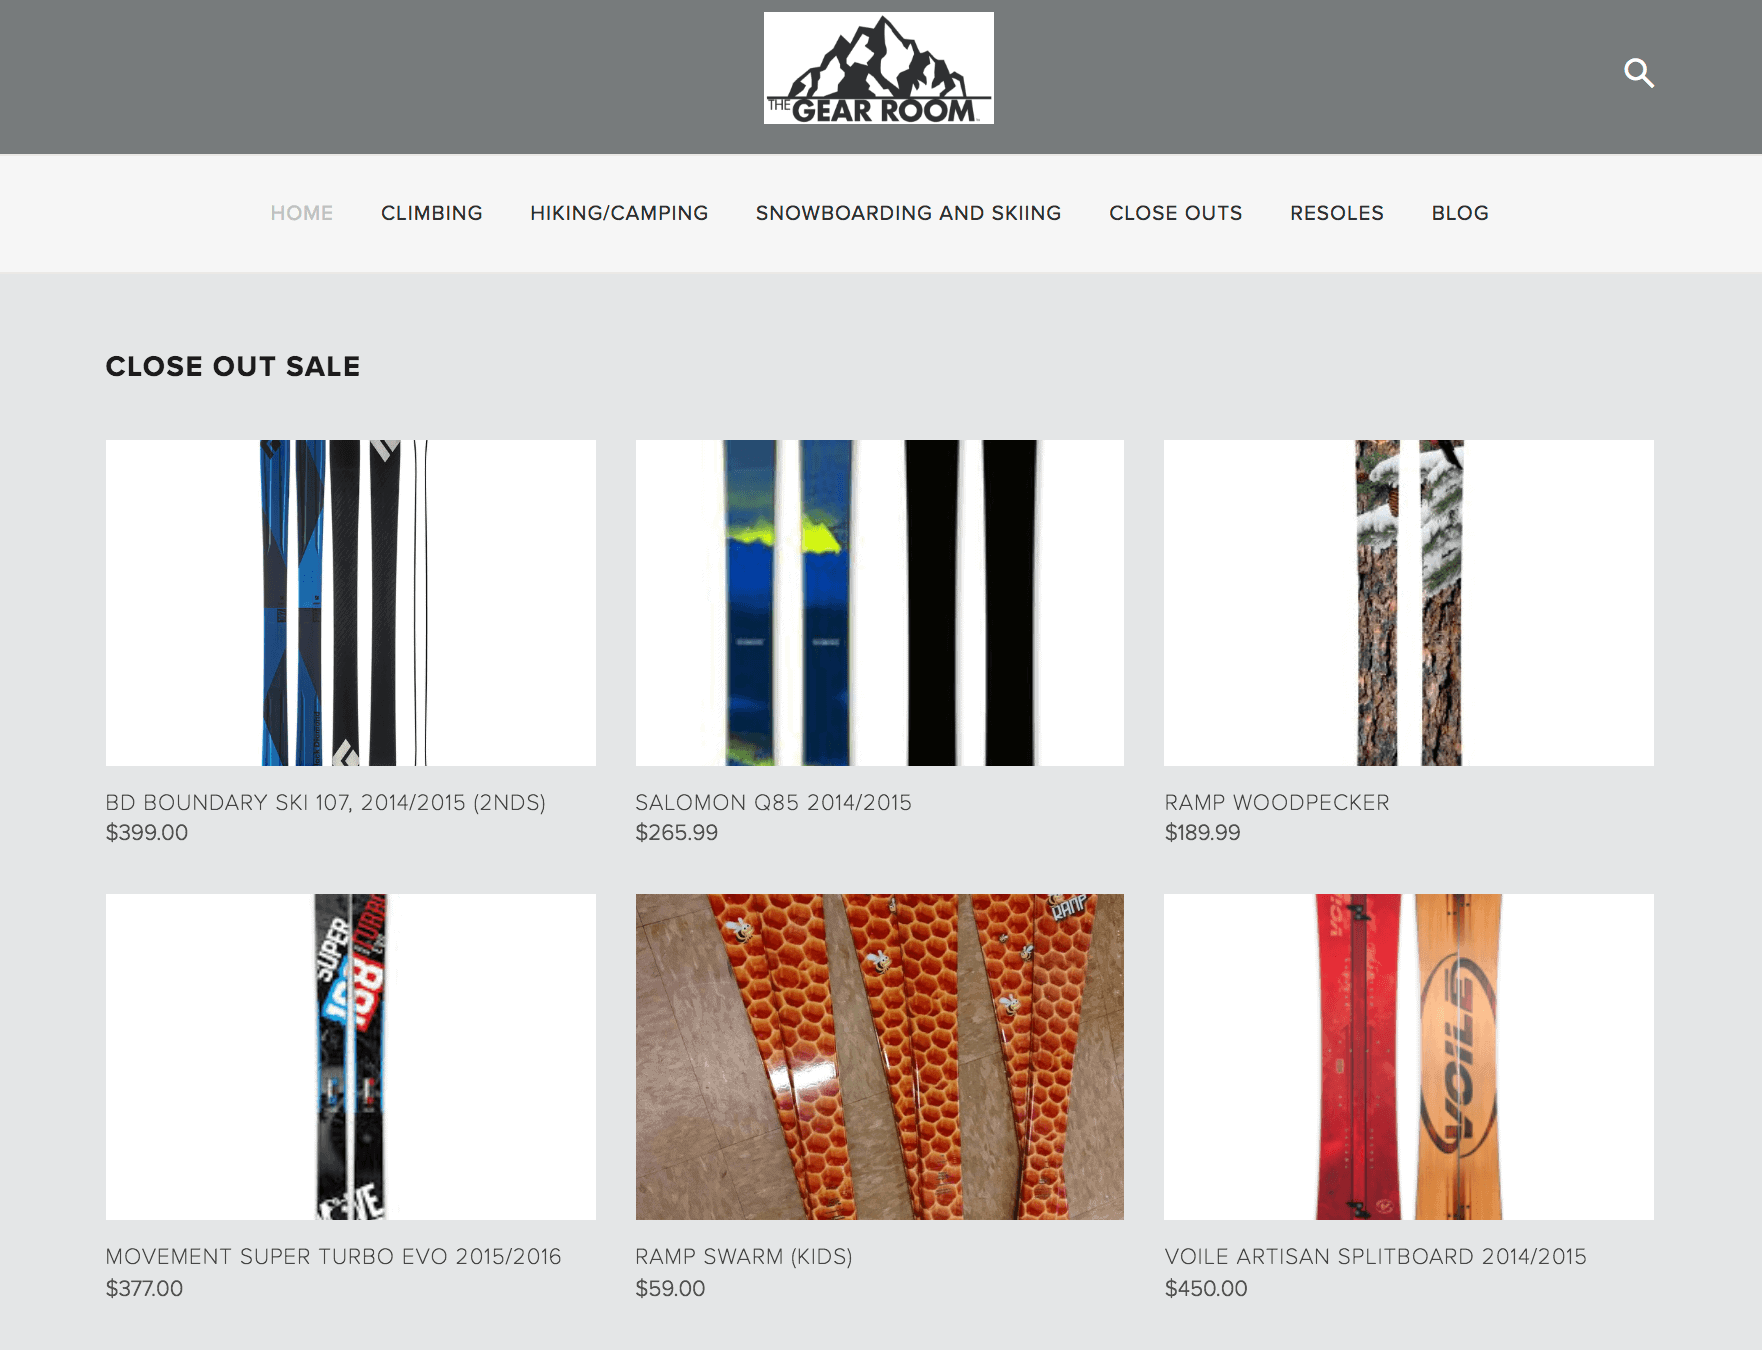 The Gear Room is a great place to find discounted outdoor gear online